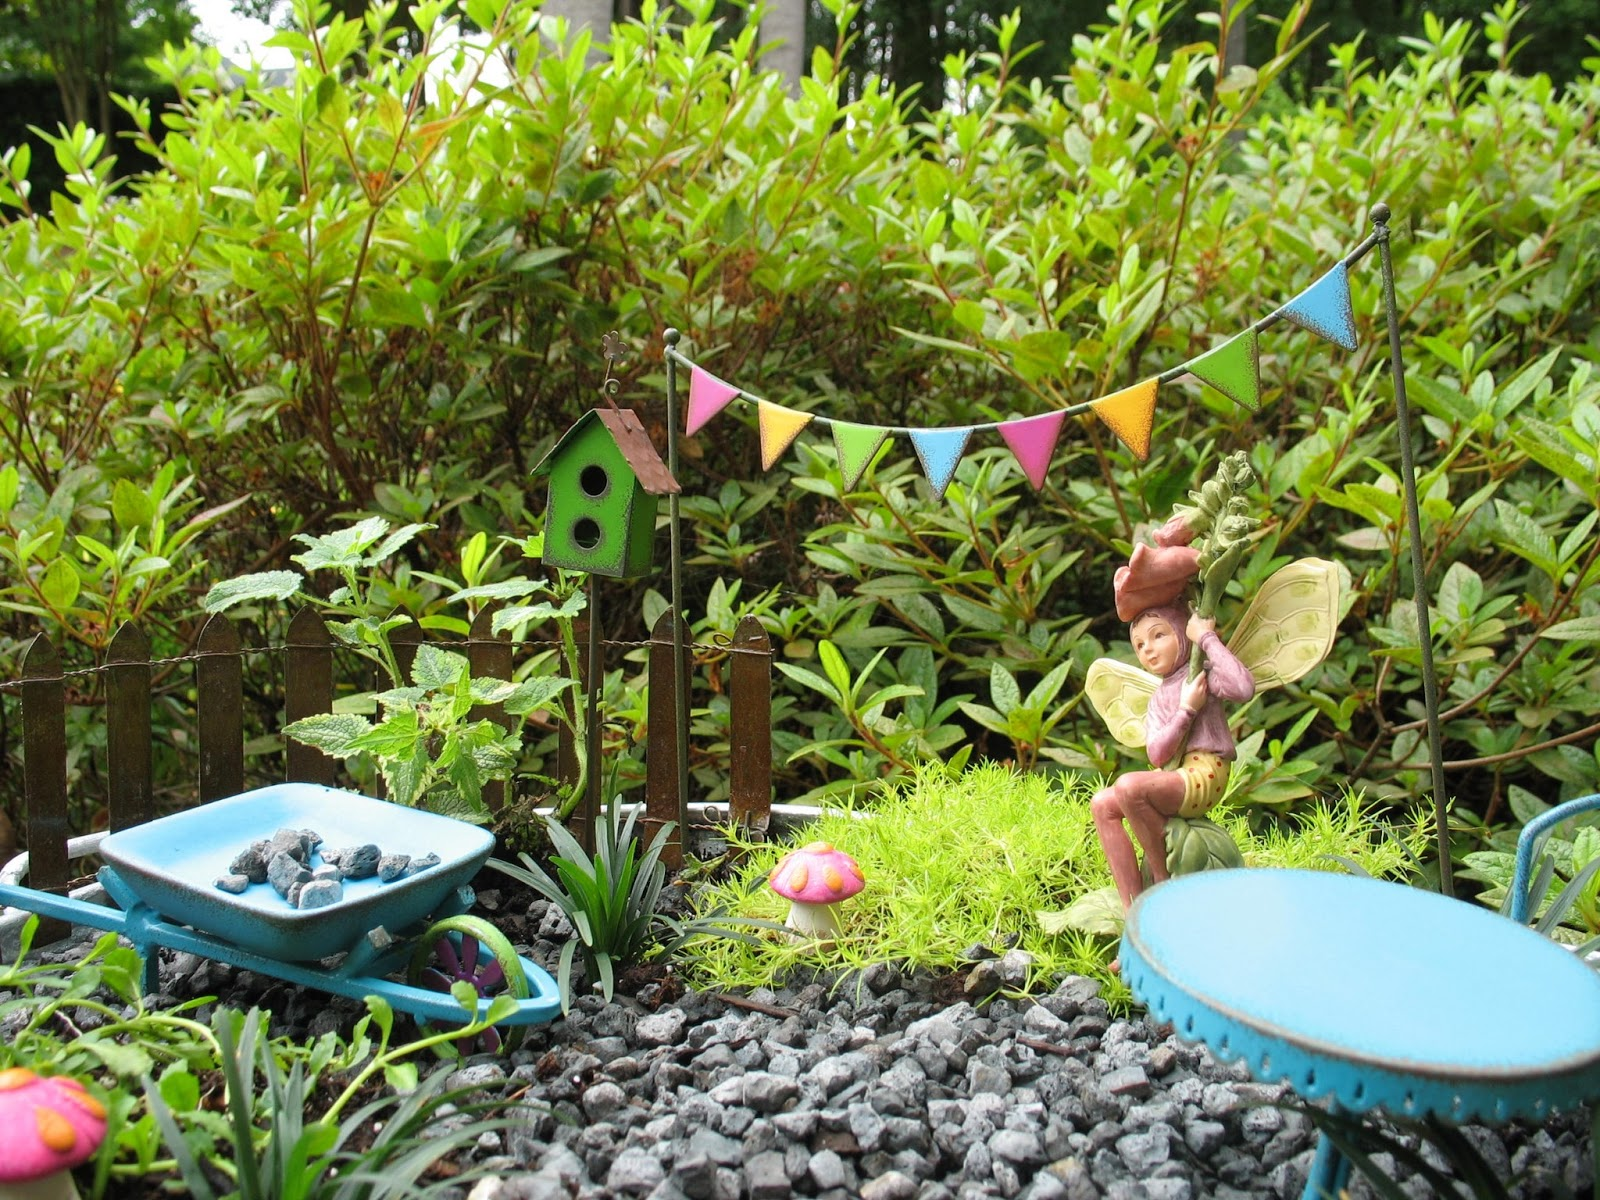 The Charm House Fairy Gardens At The Cotton Depot